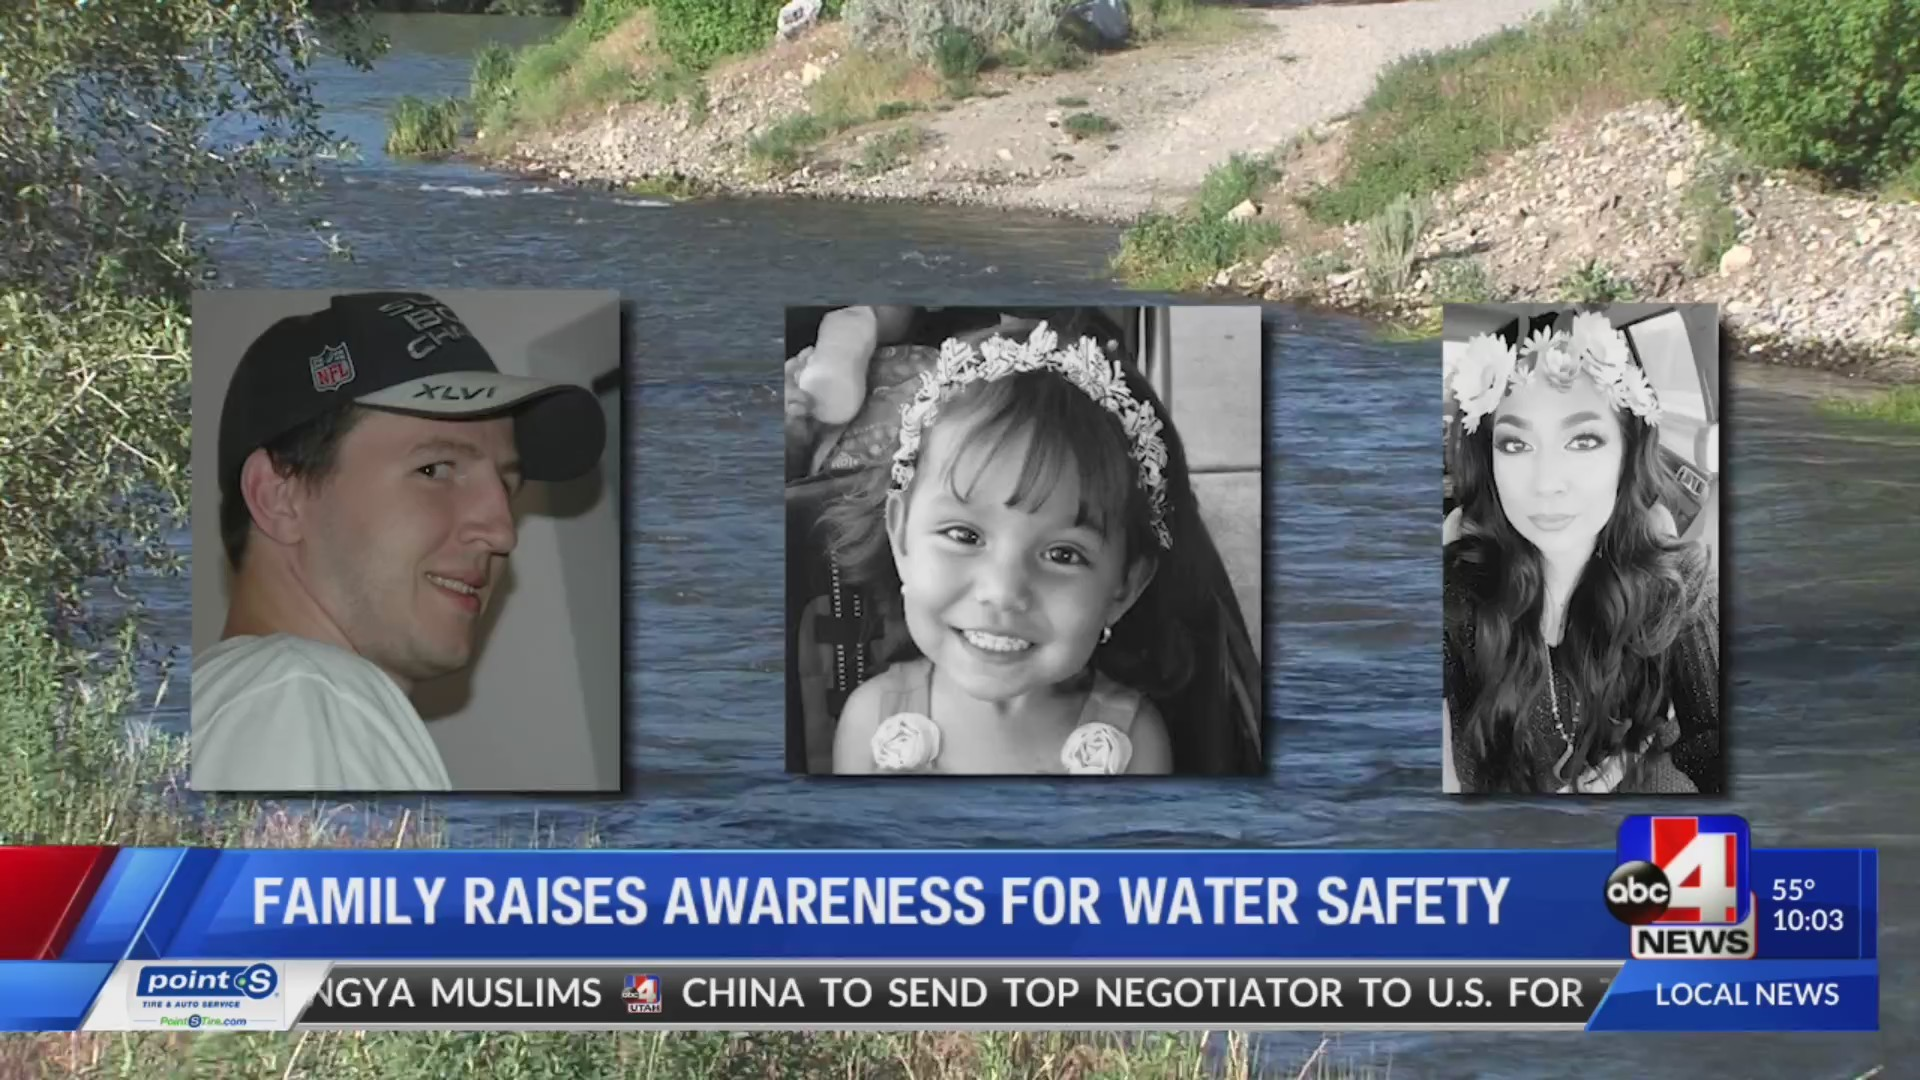 Family warning others about water safety after son, 2 others